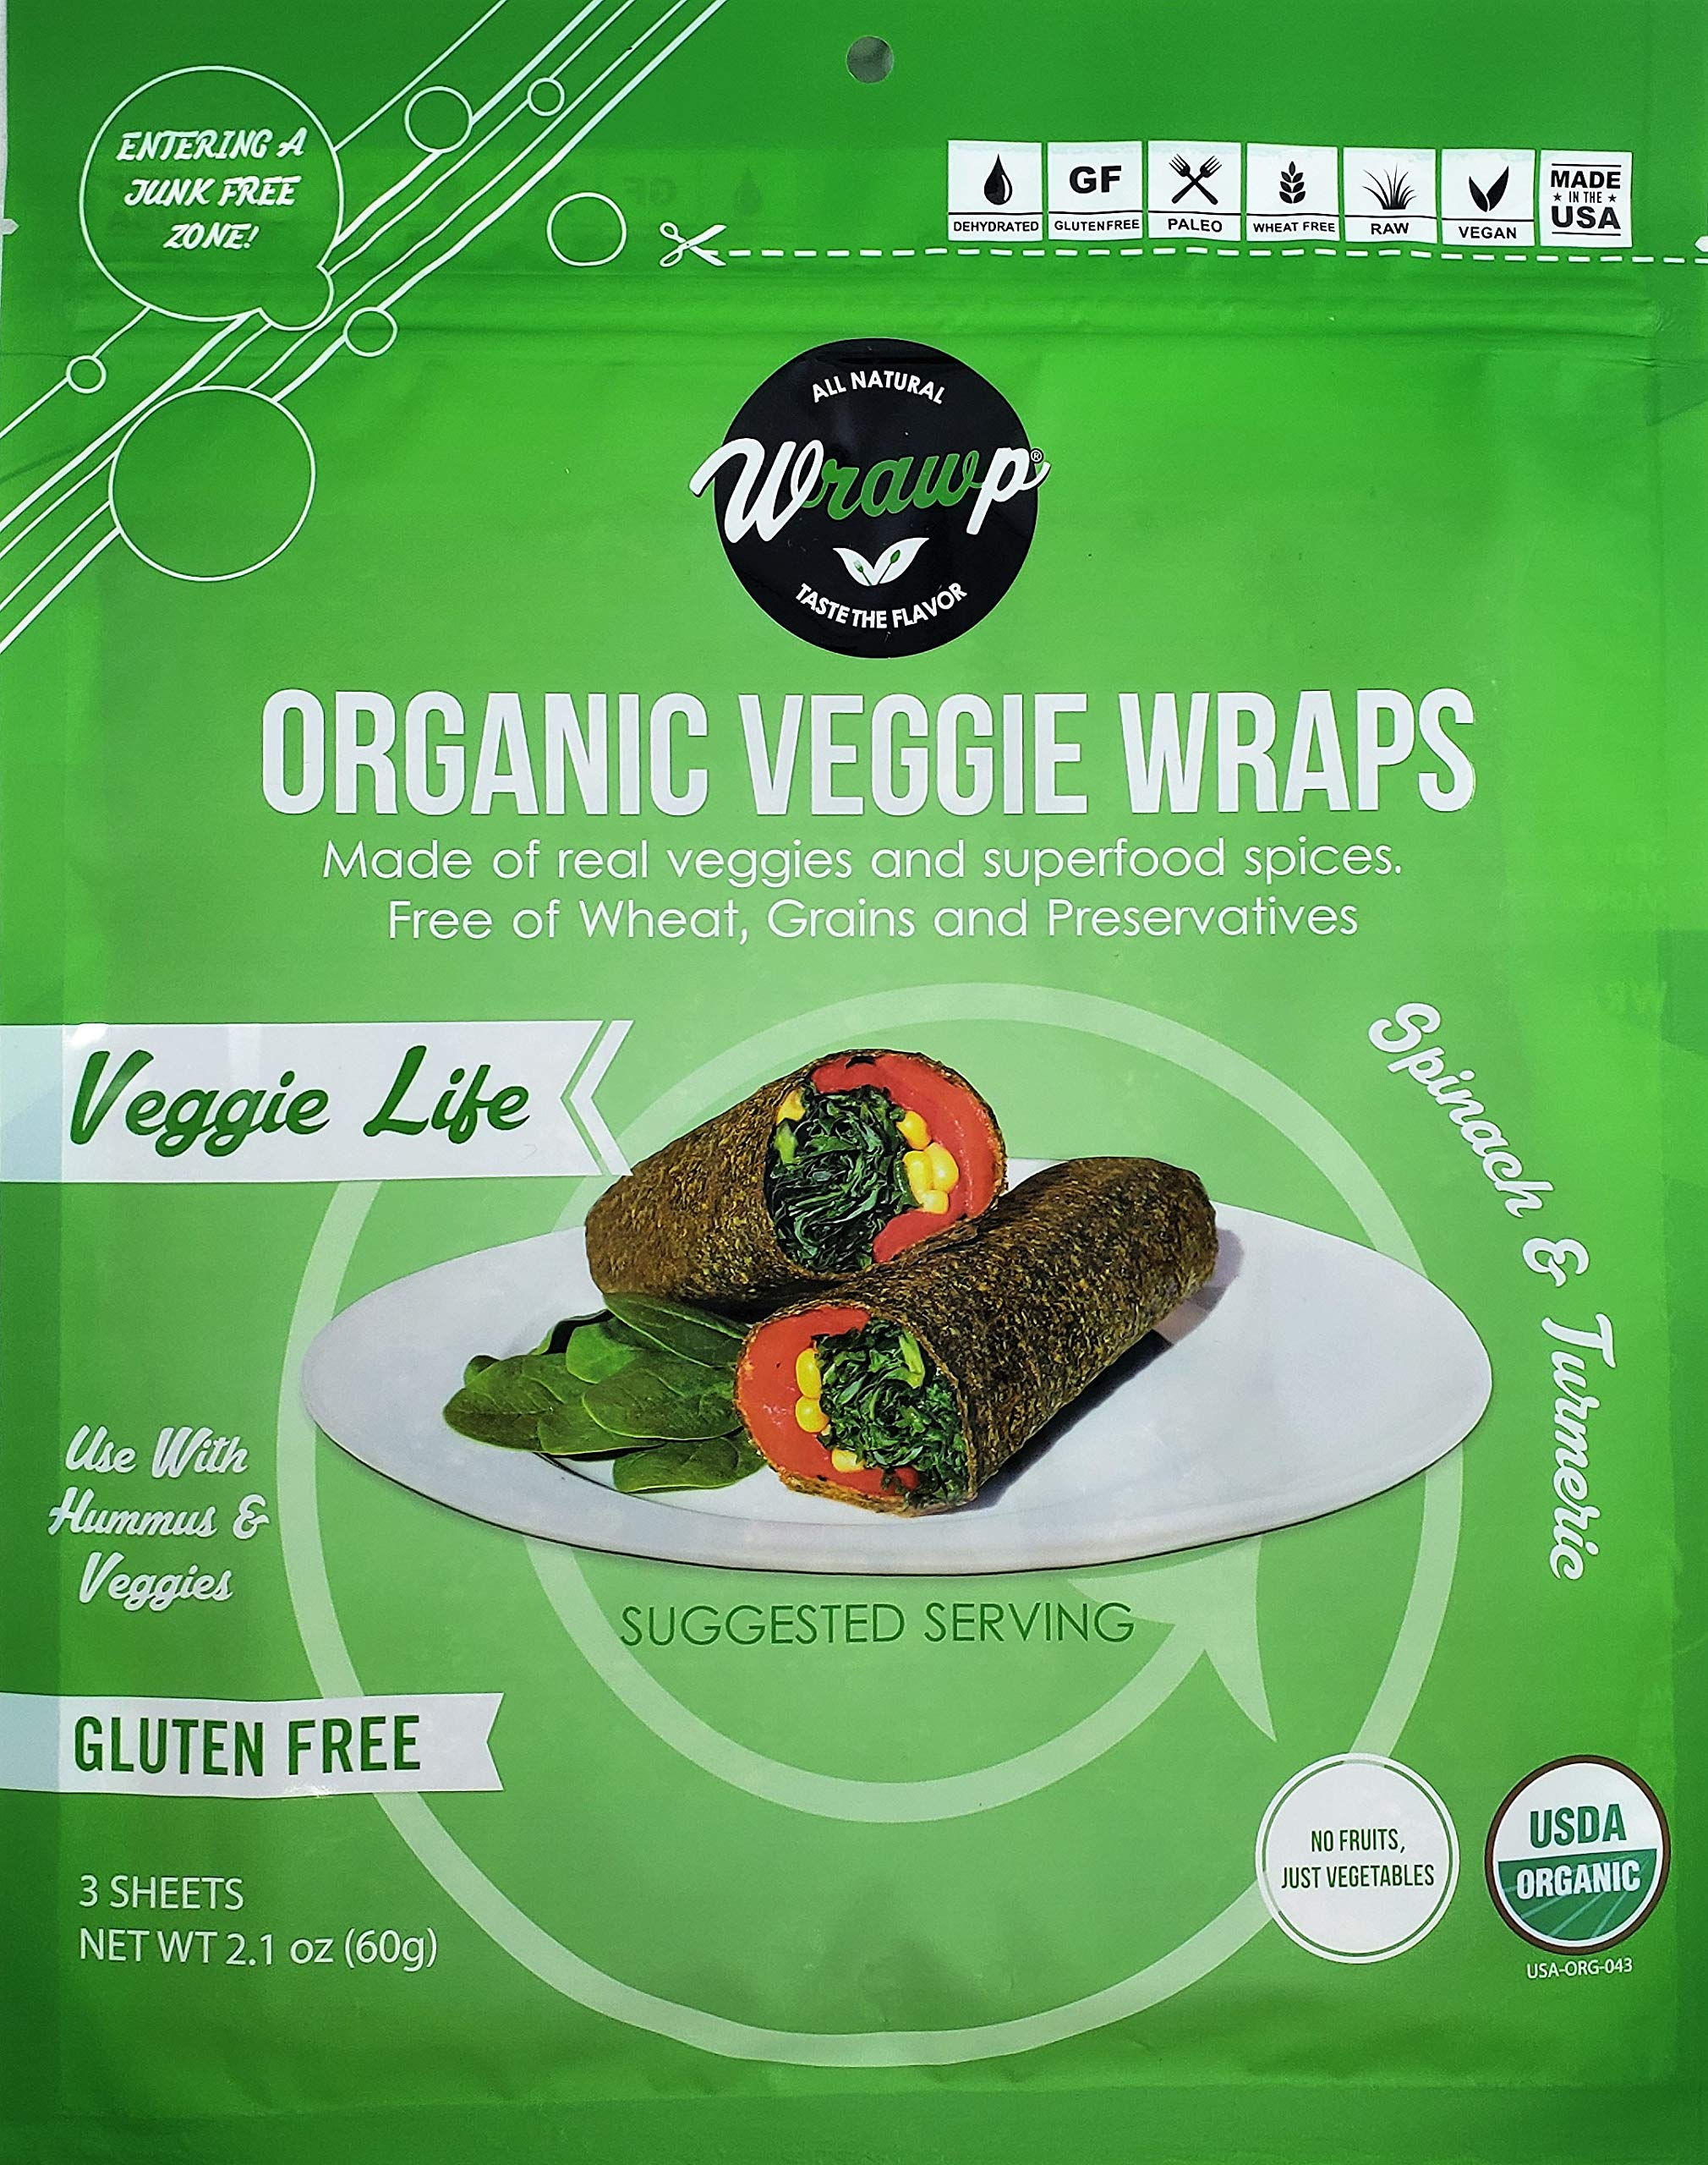 Organic Veggie Wraps - Mini Veggie Life Wraps (2 pack) by Wrawp | Perfect for Wraps, Sandwiches, Crackers, Side Bread or a Simple Snack